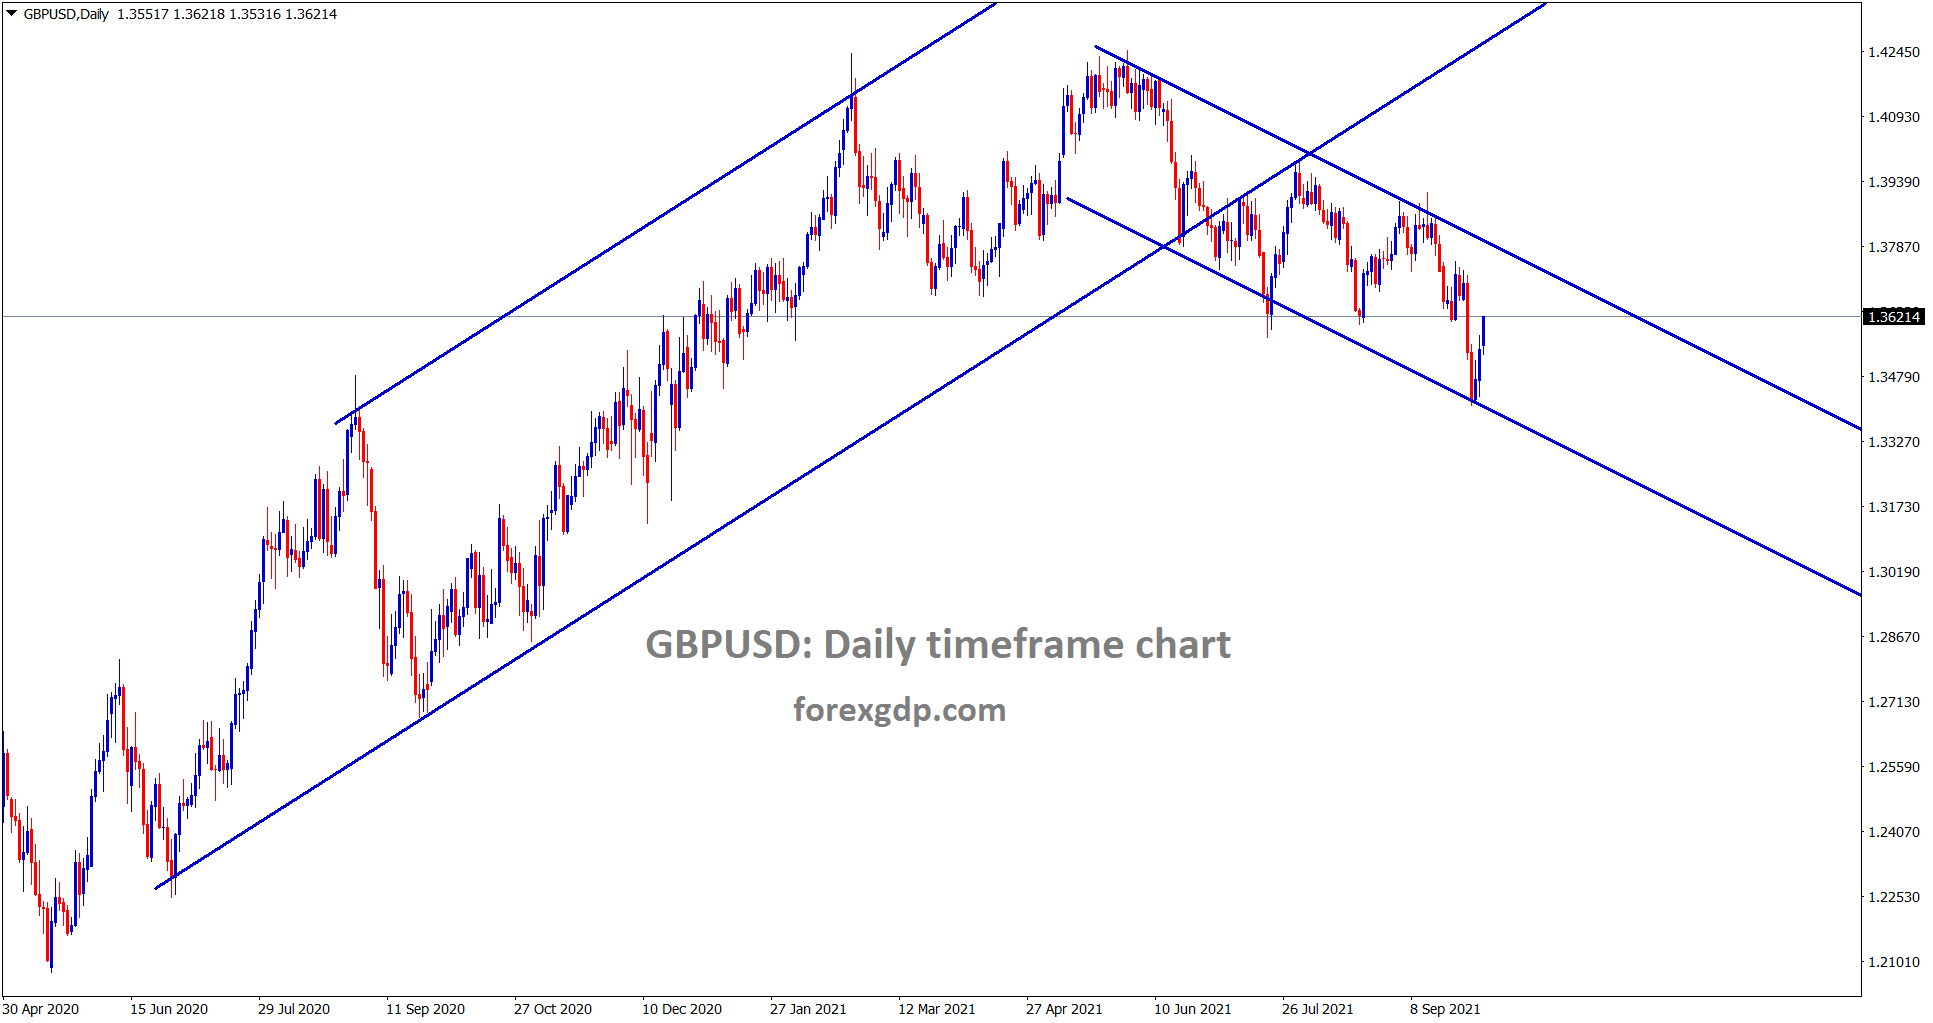 GBPUSD is rebounding faster from the lower low level of a descending channel